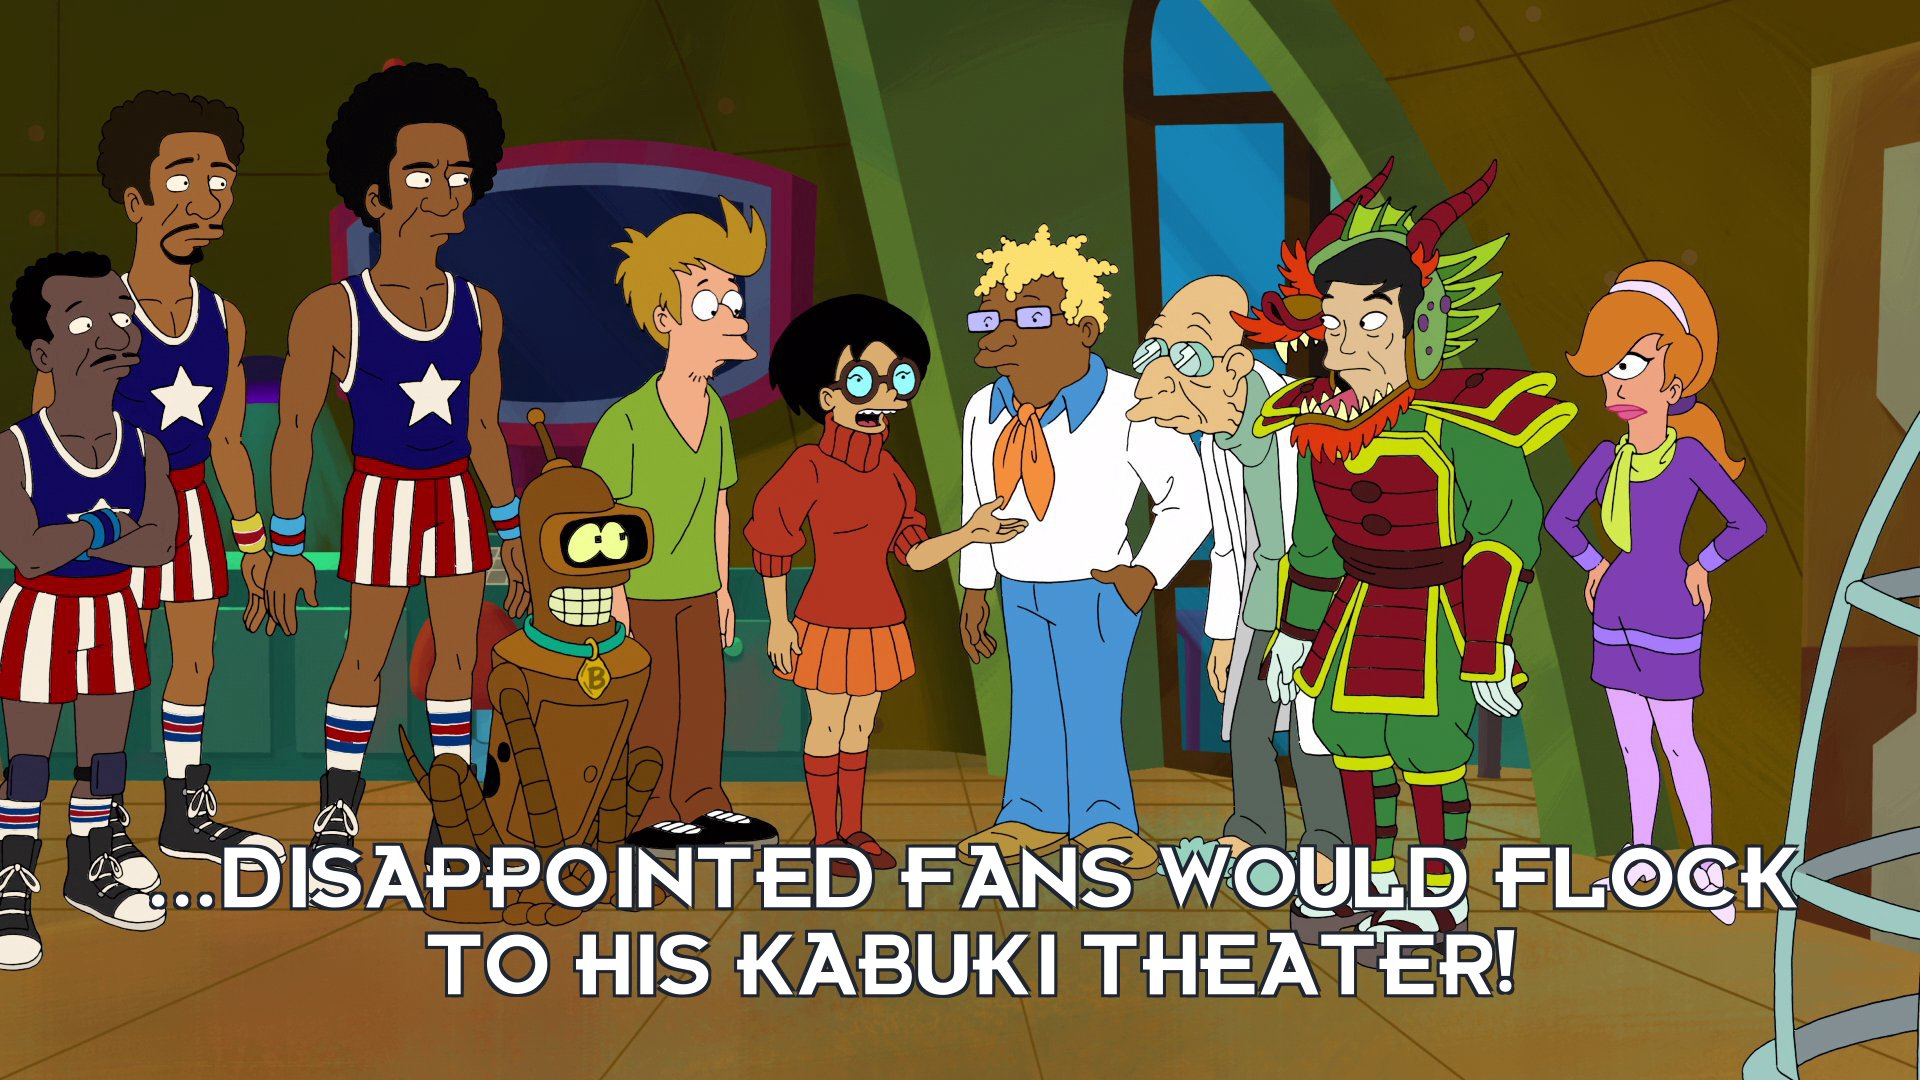 Velma Wong: ...disappointed fans would flock to his Kabuki theater!